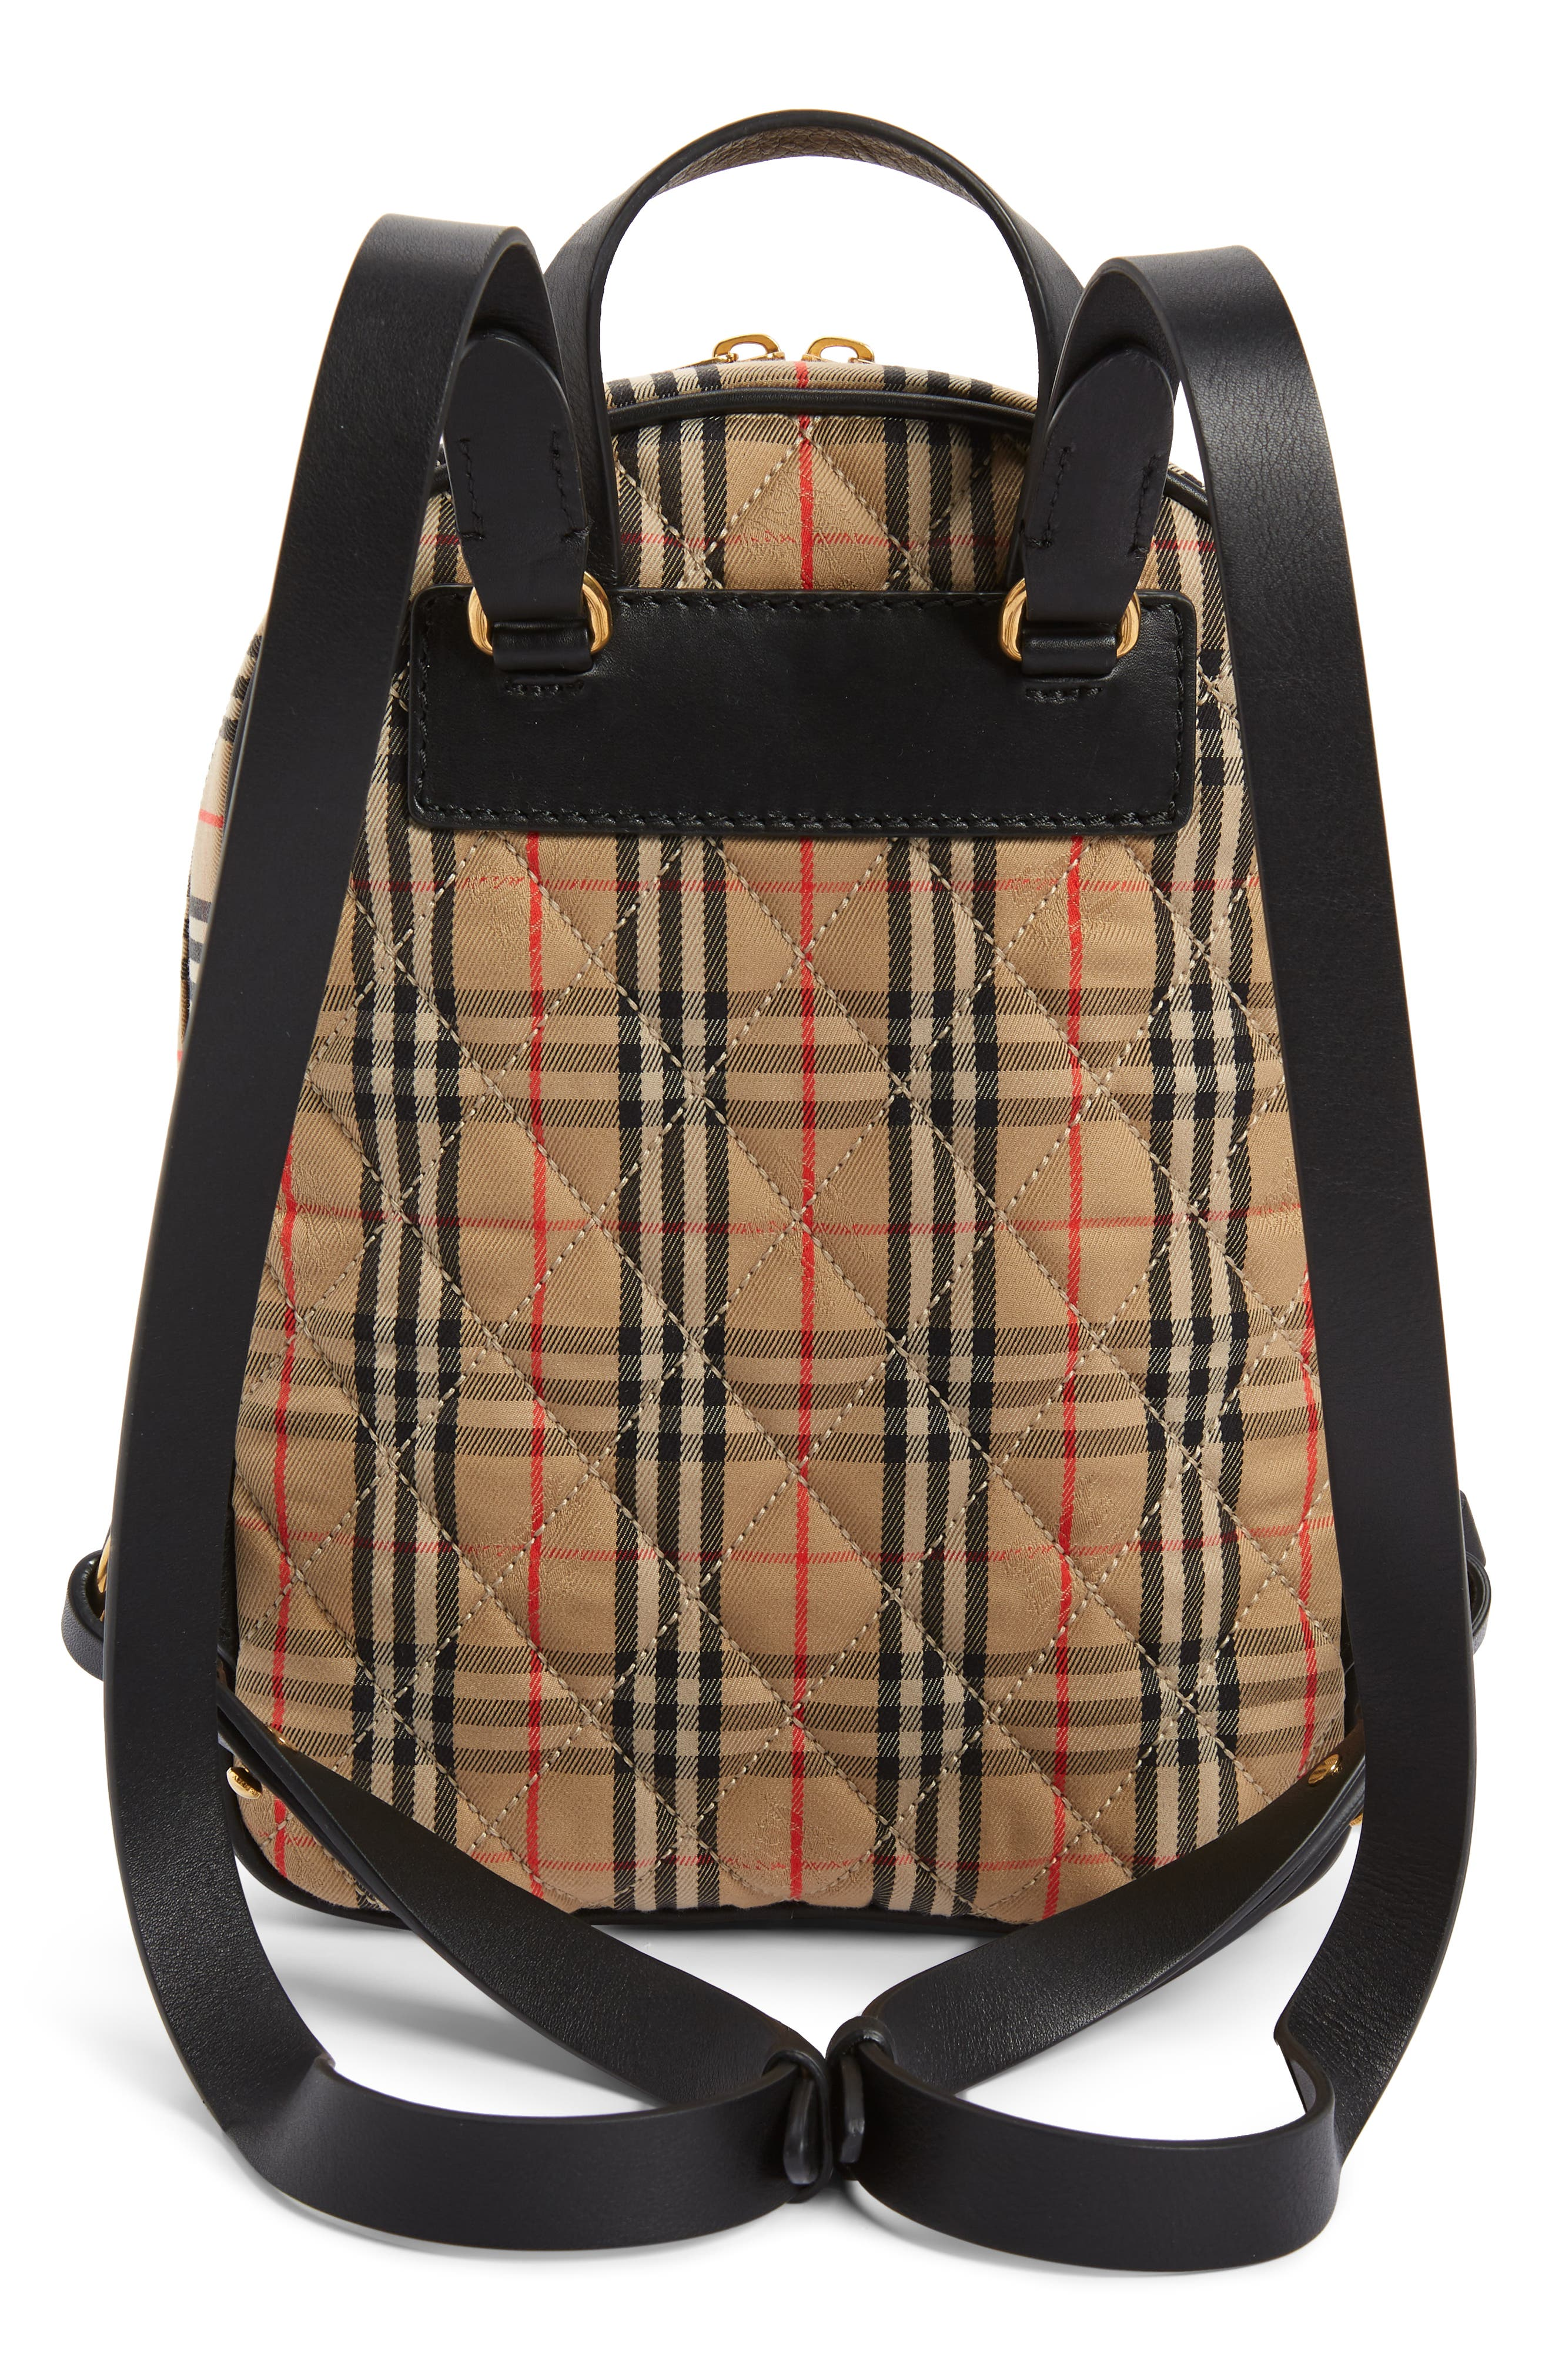 Link Vintage Check Canvas Backpack,                             Alternate thumbnail 3, color,                             ANTIQUE YELLOW/ BLACK